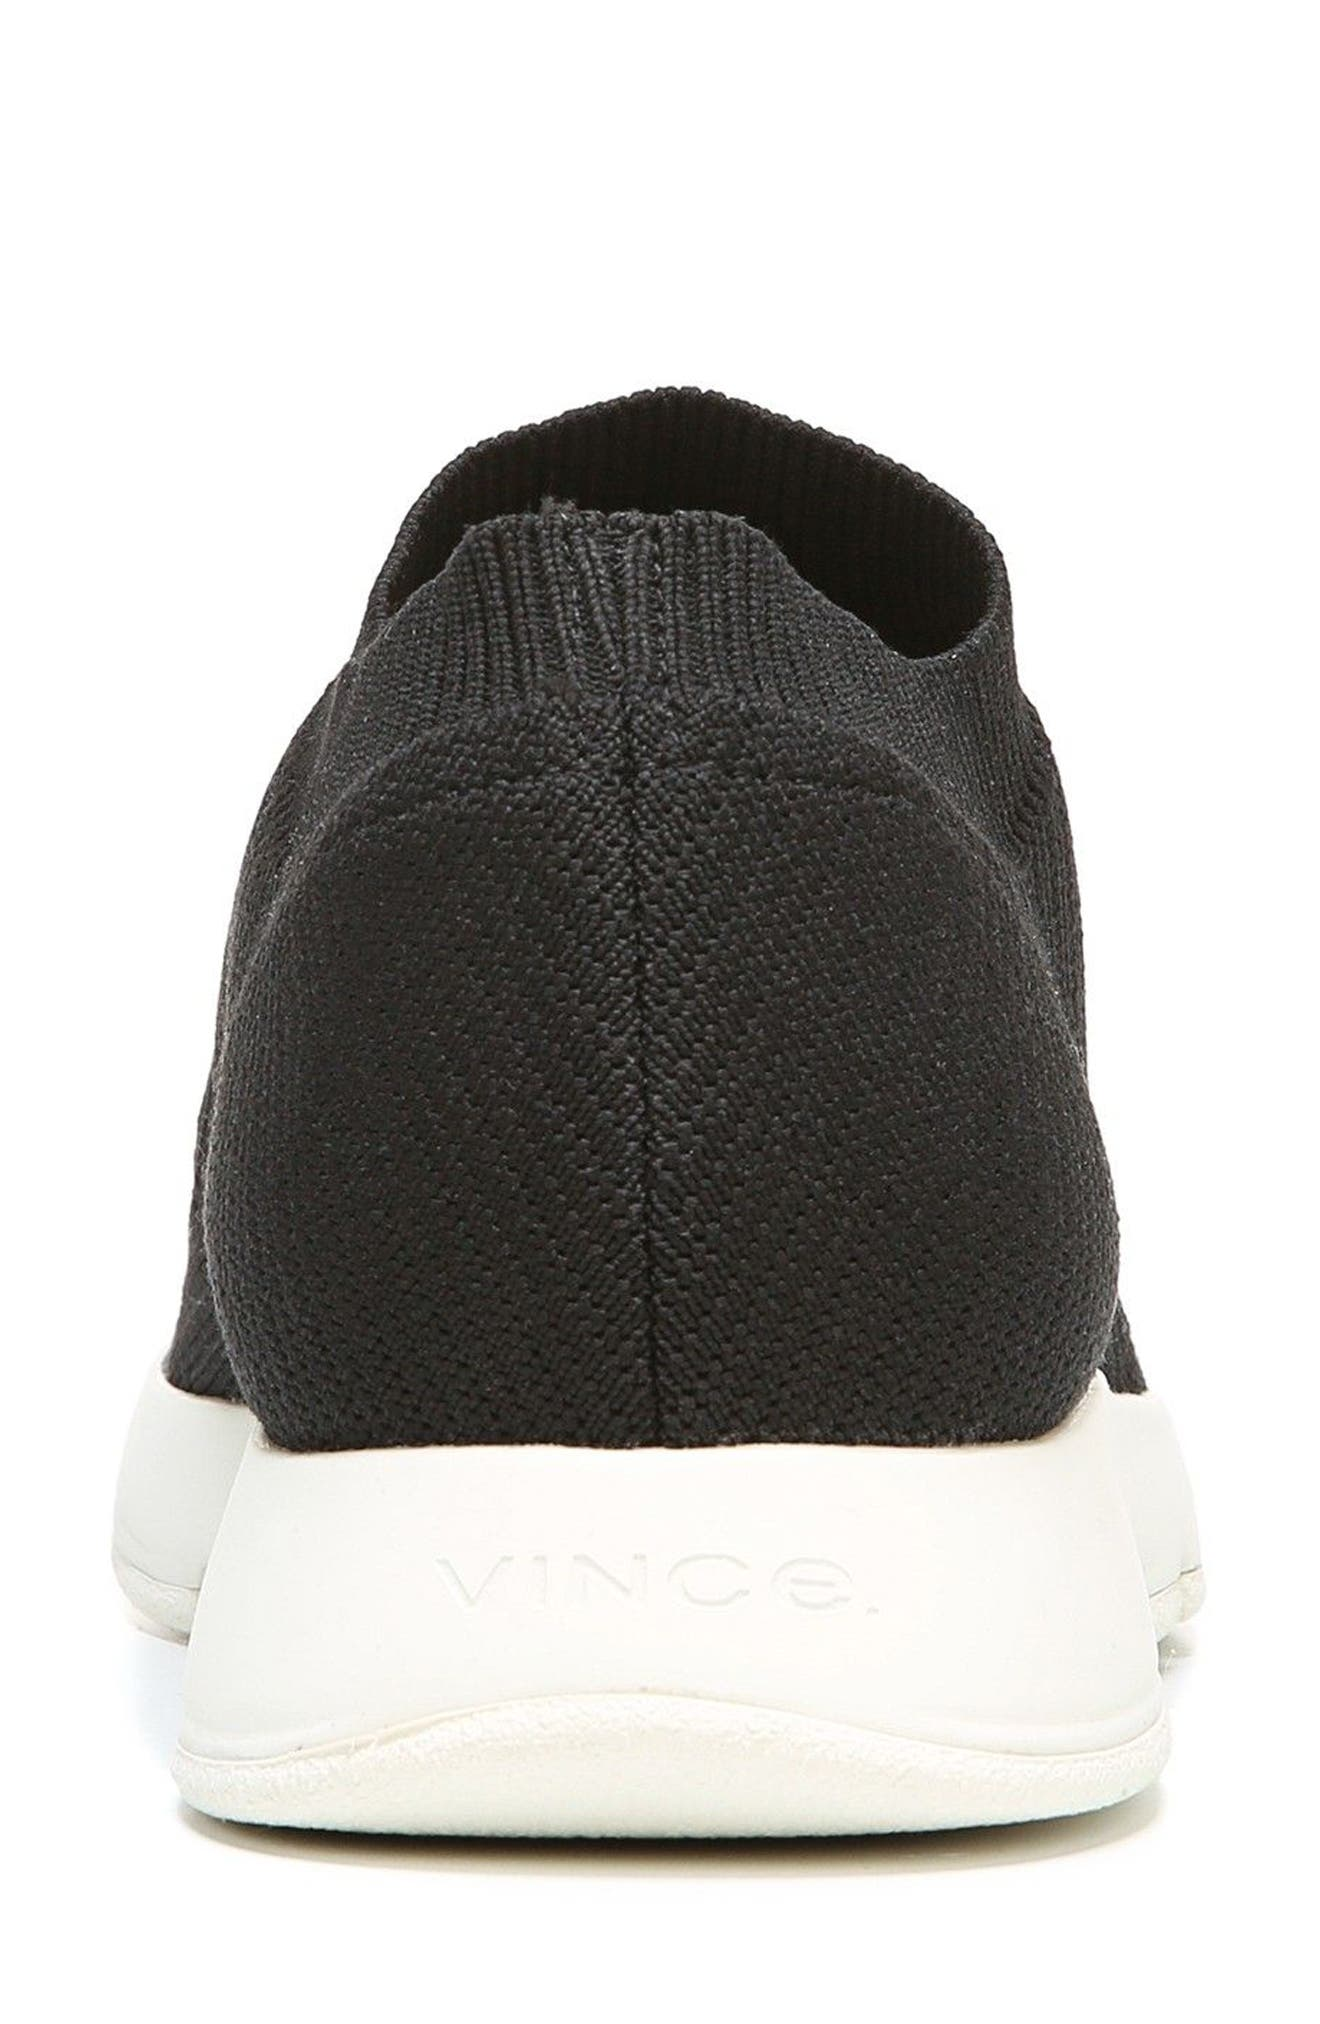 Theroux Slip-On Knit Sneaker,                             Alternate thumbnail 19, color,